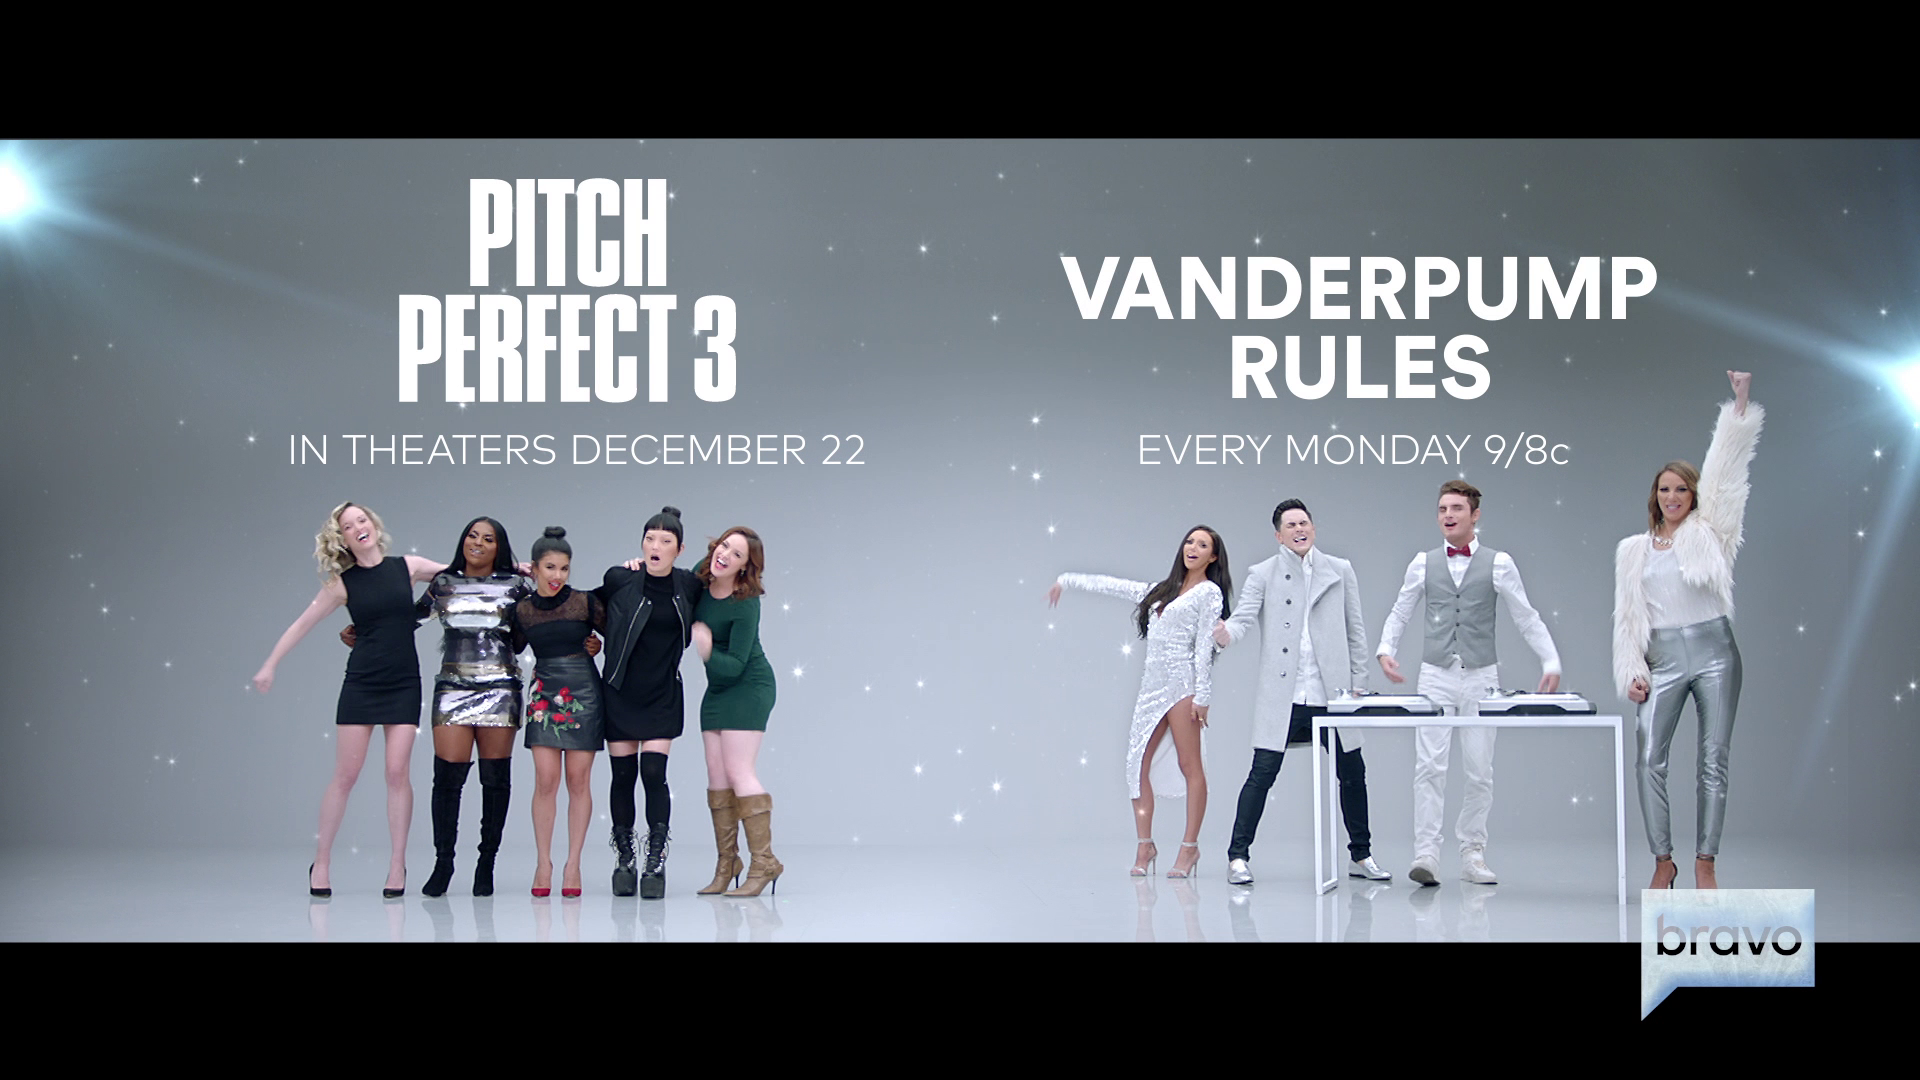 Thumbnail for Vanderpump Rules/Pitch Perfect 3